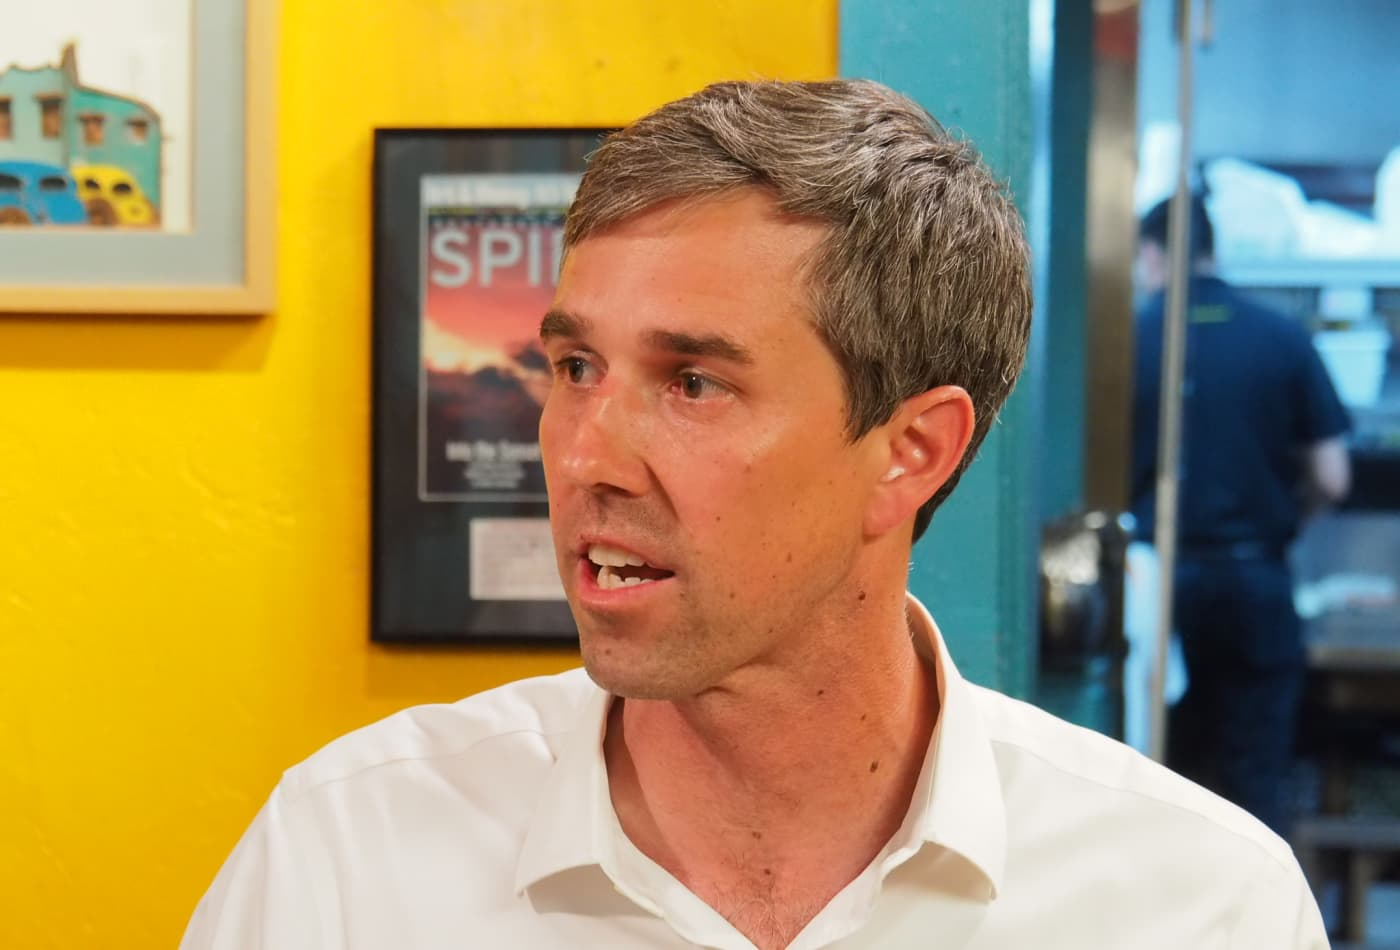 Beto O'Rourke begins filling in the blanks on the economy, taxes and entitlements